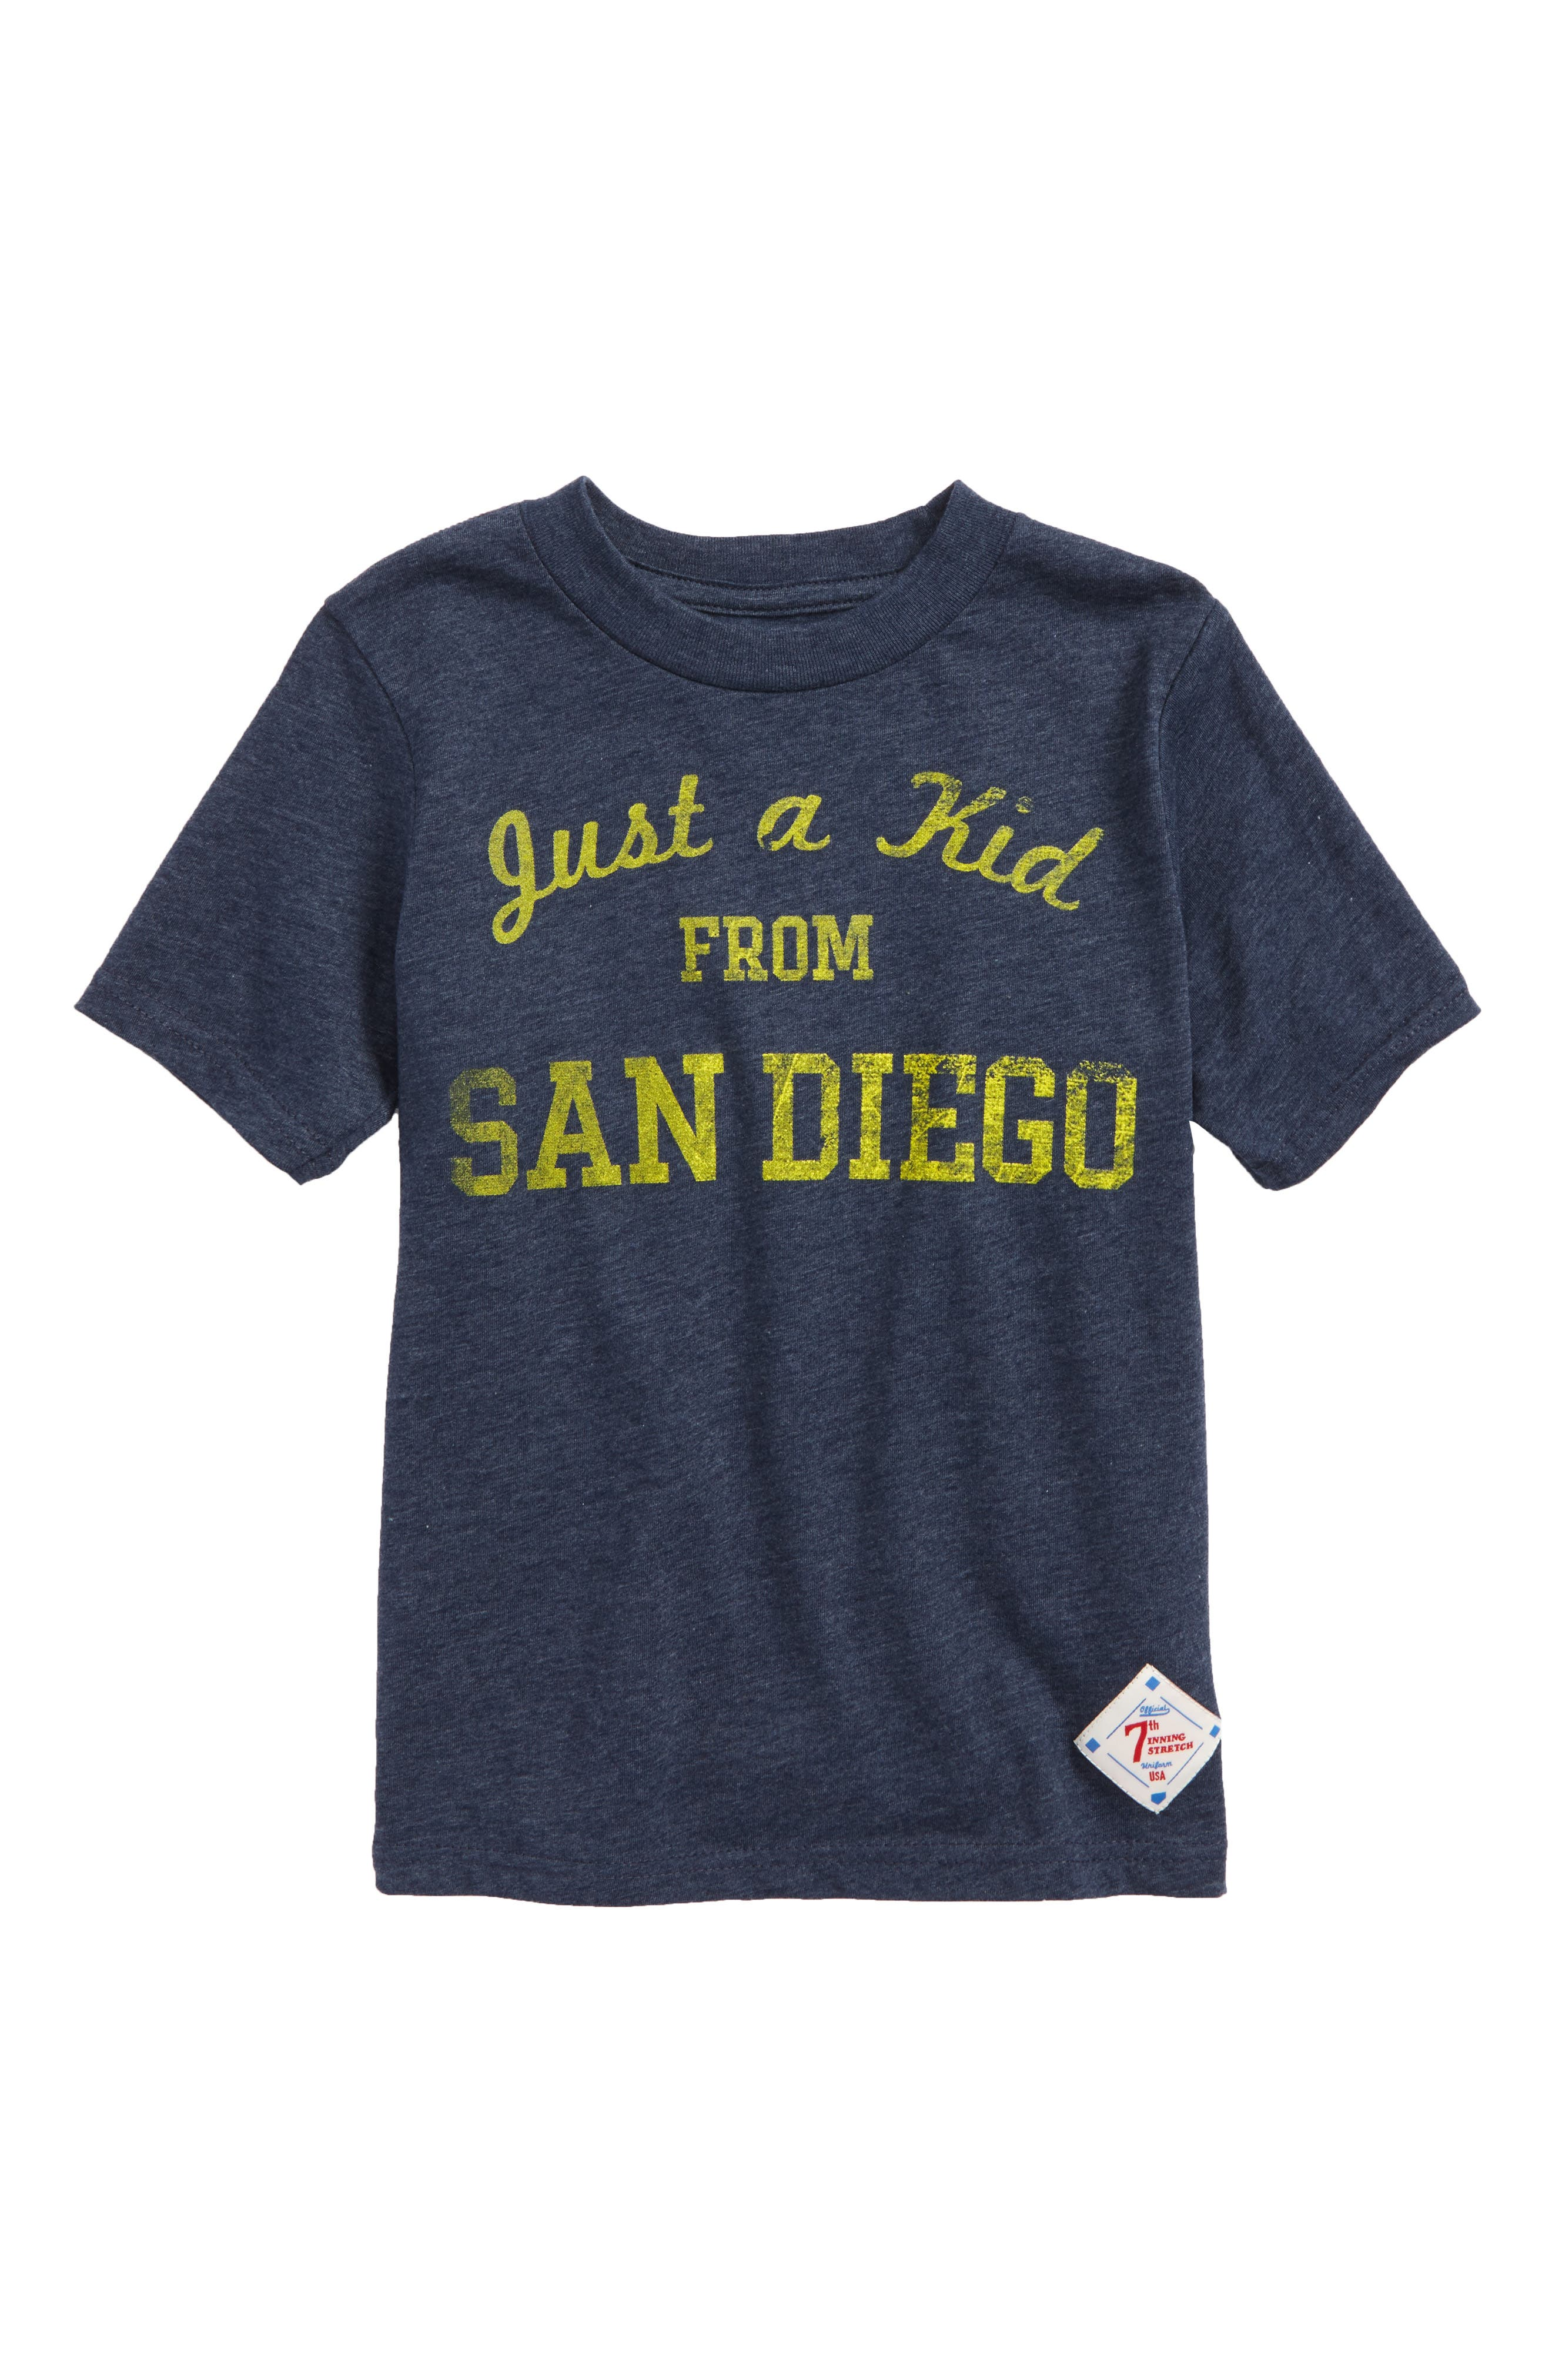 Just a Kid from San Diego Graphic T-Shirt,                             Main thumbnail 1, color,                             410